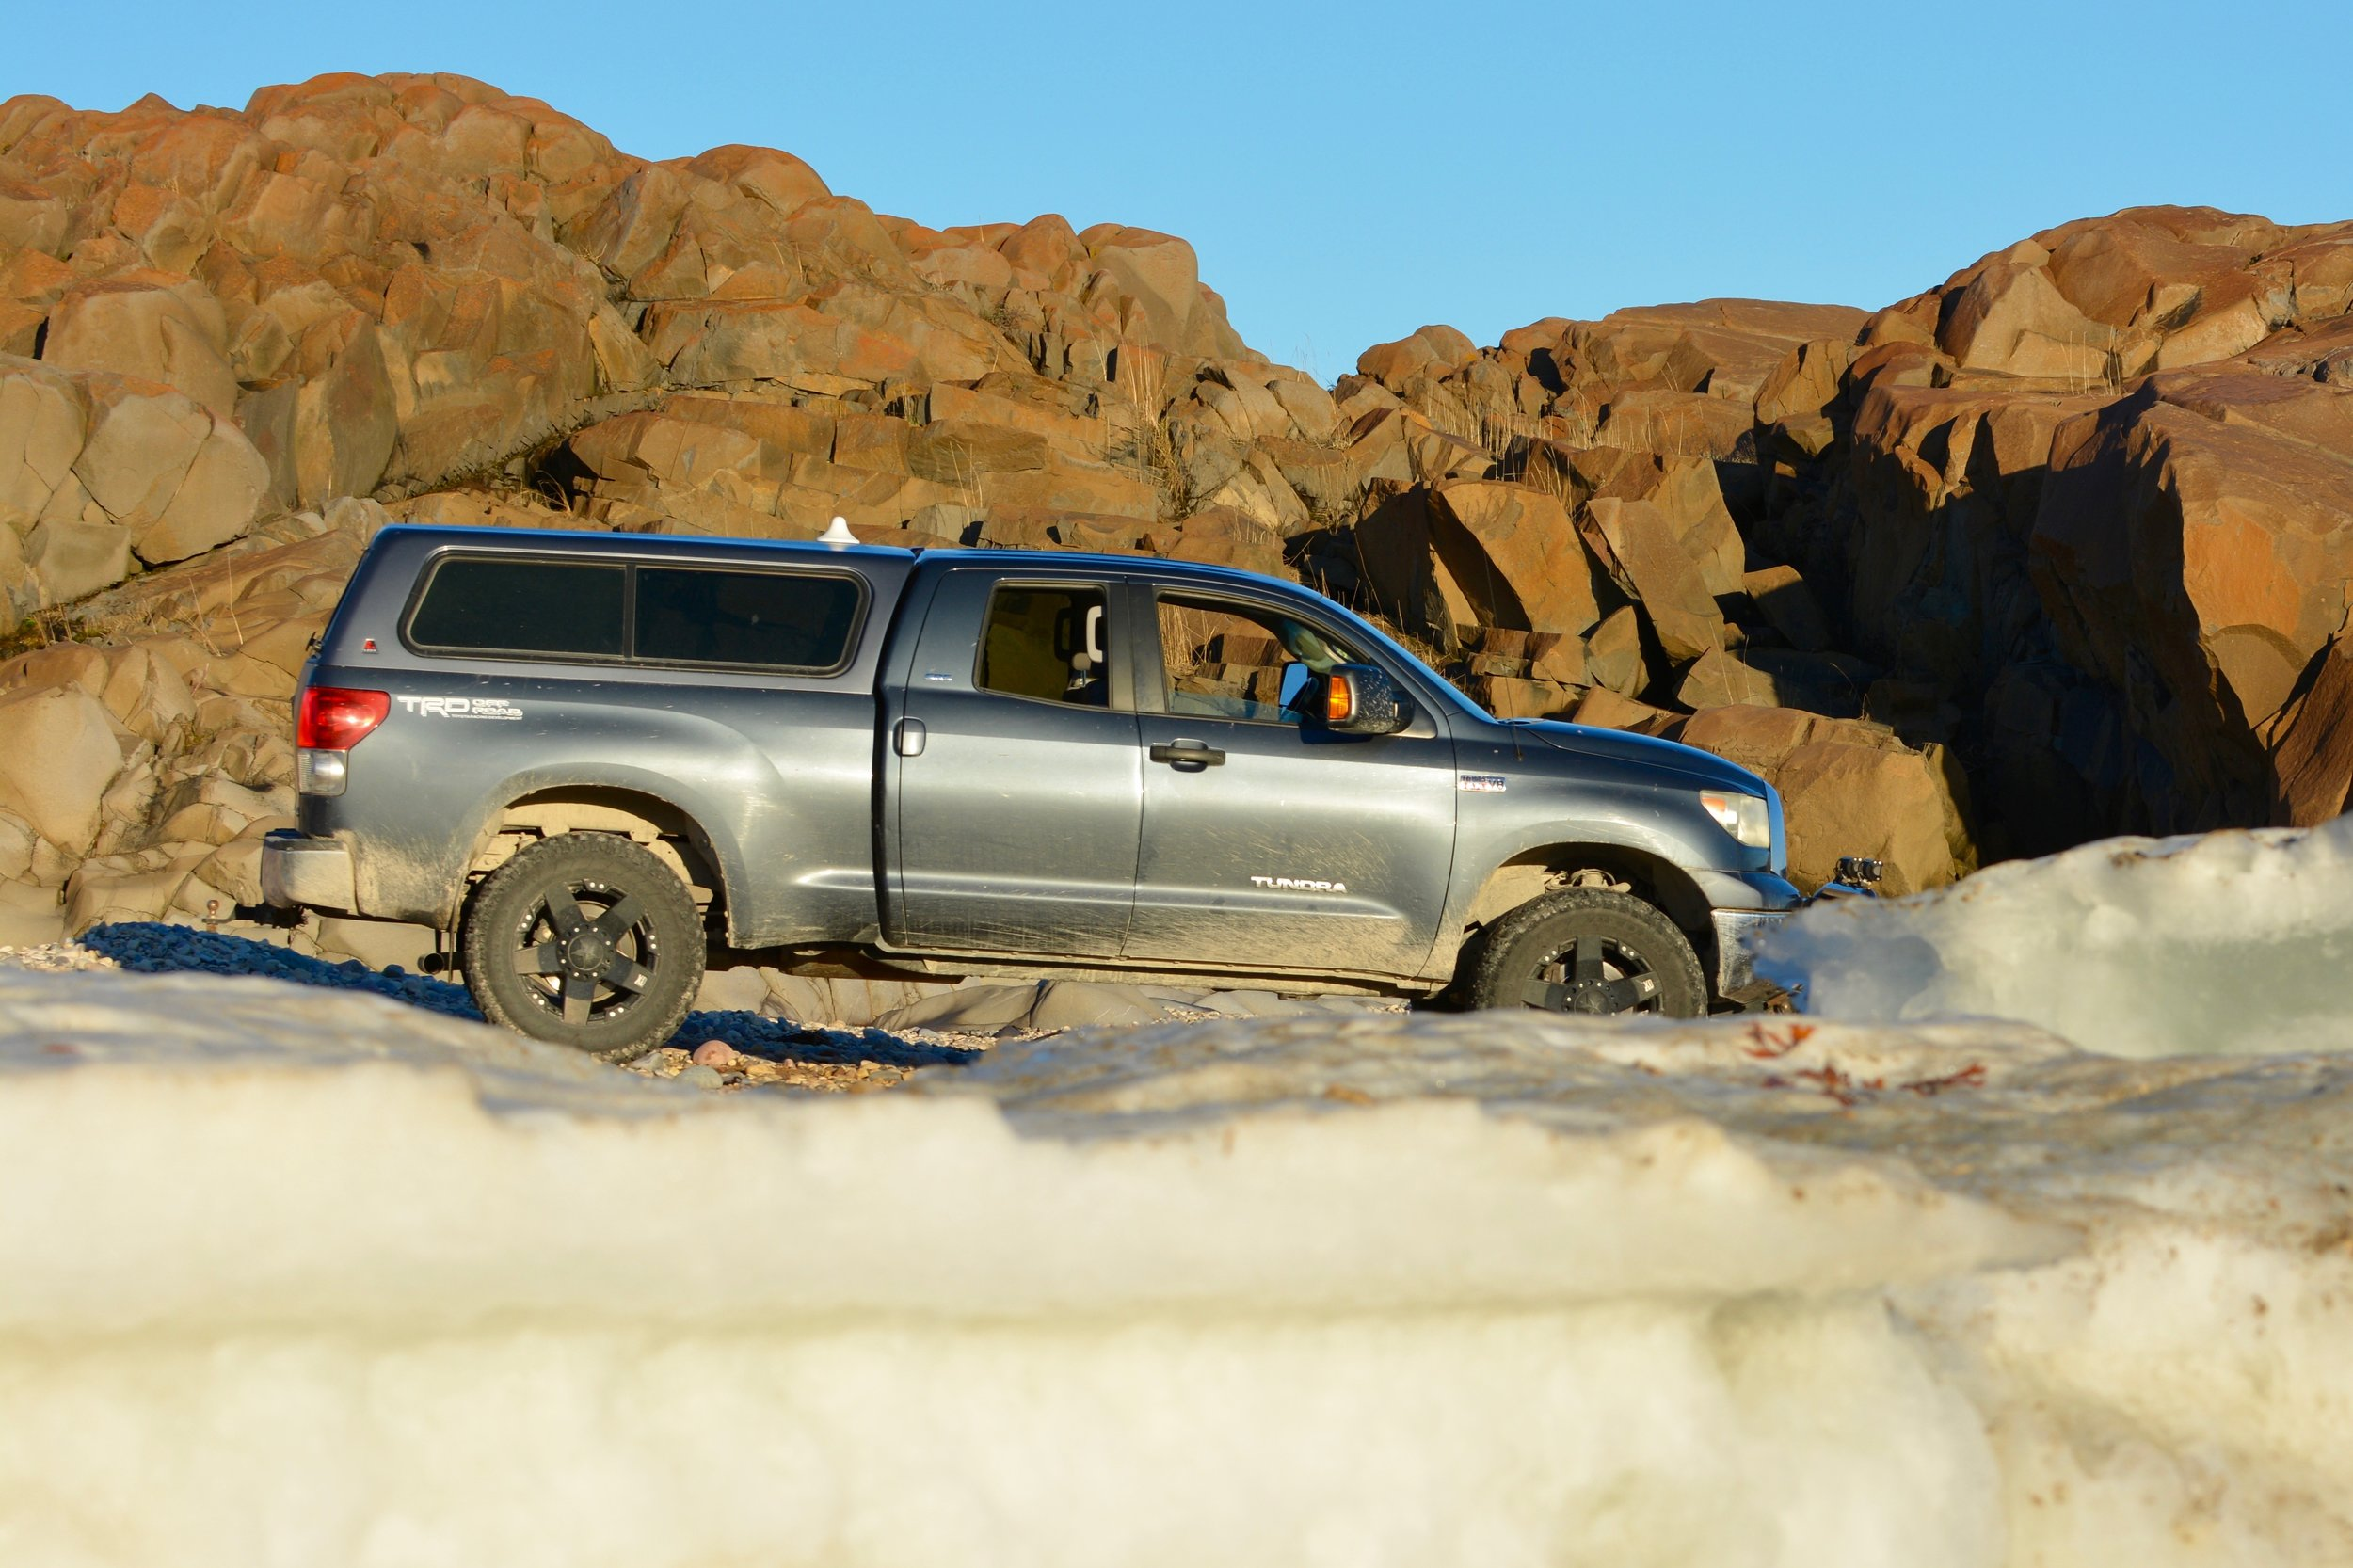 Nanuqtours Tundra truck rental @ $155.00 per day. Requirements needed.